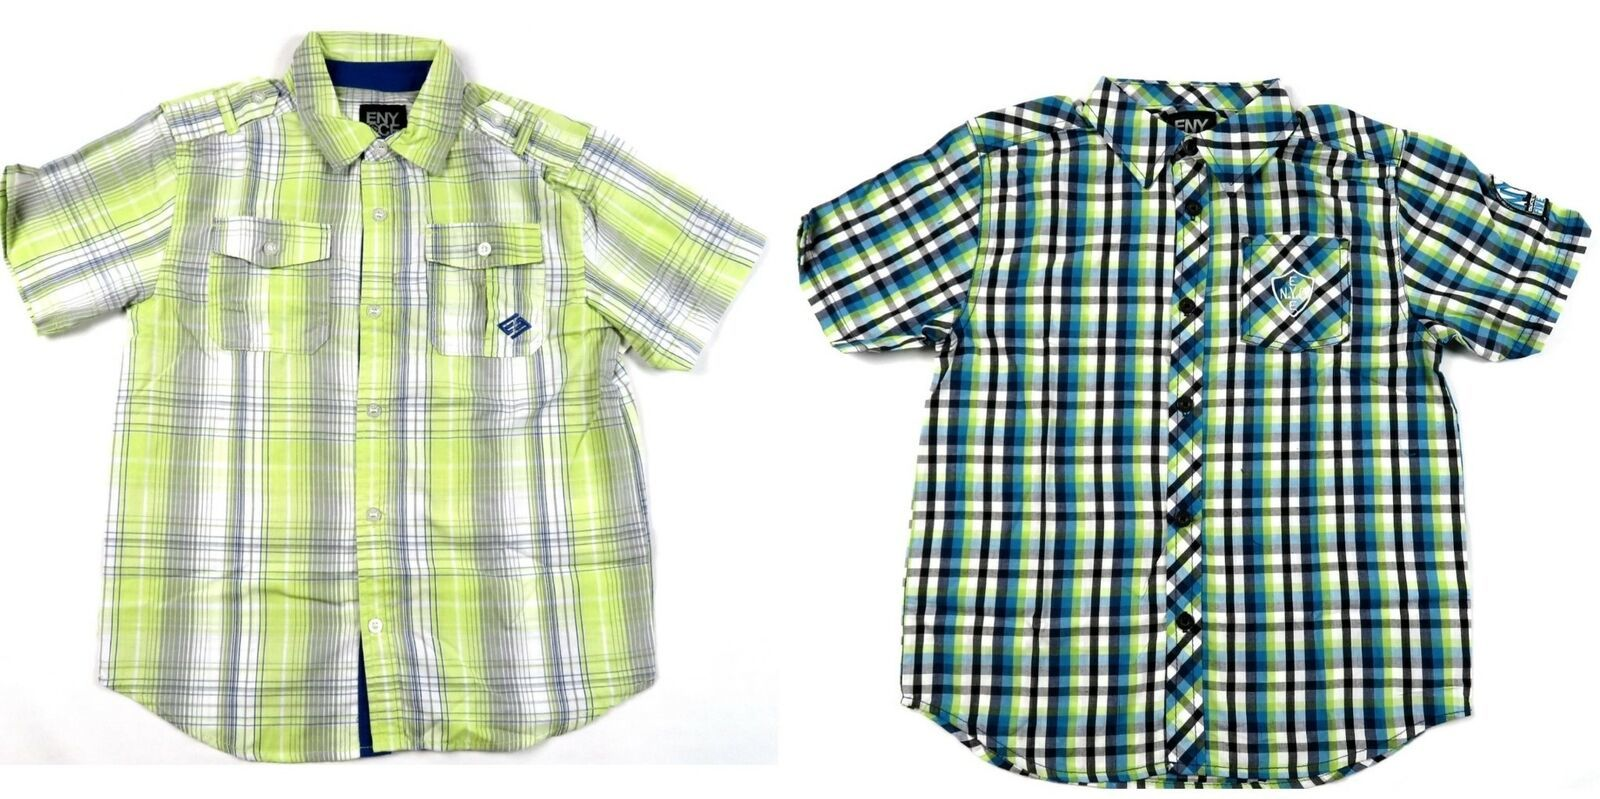 Boy's 4-7x Shirt ENYCE Button Front Woven Short Sleeve Licensed NEW